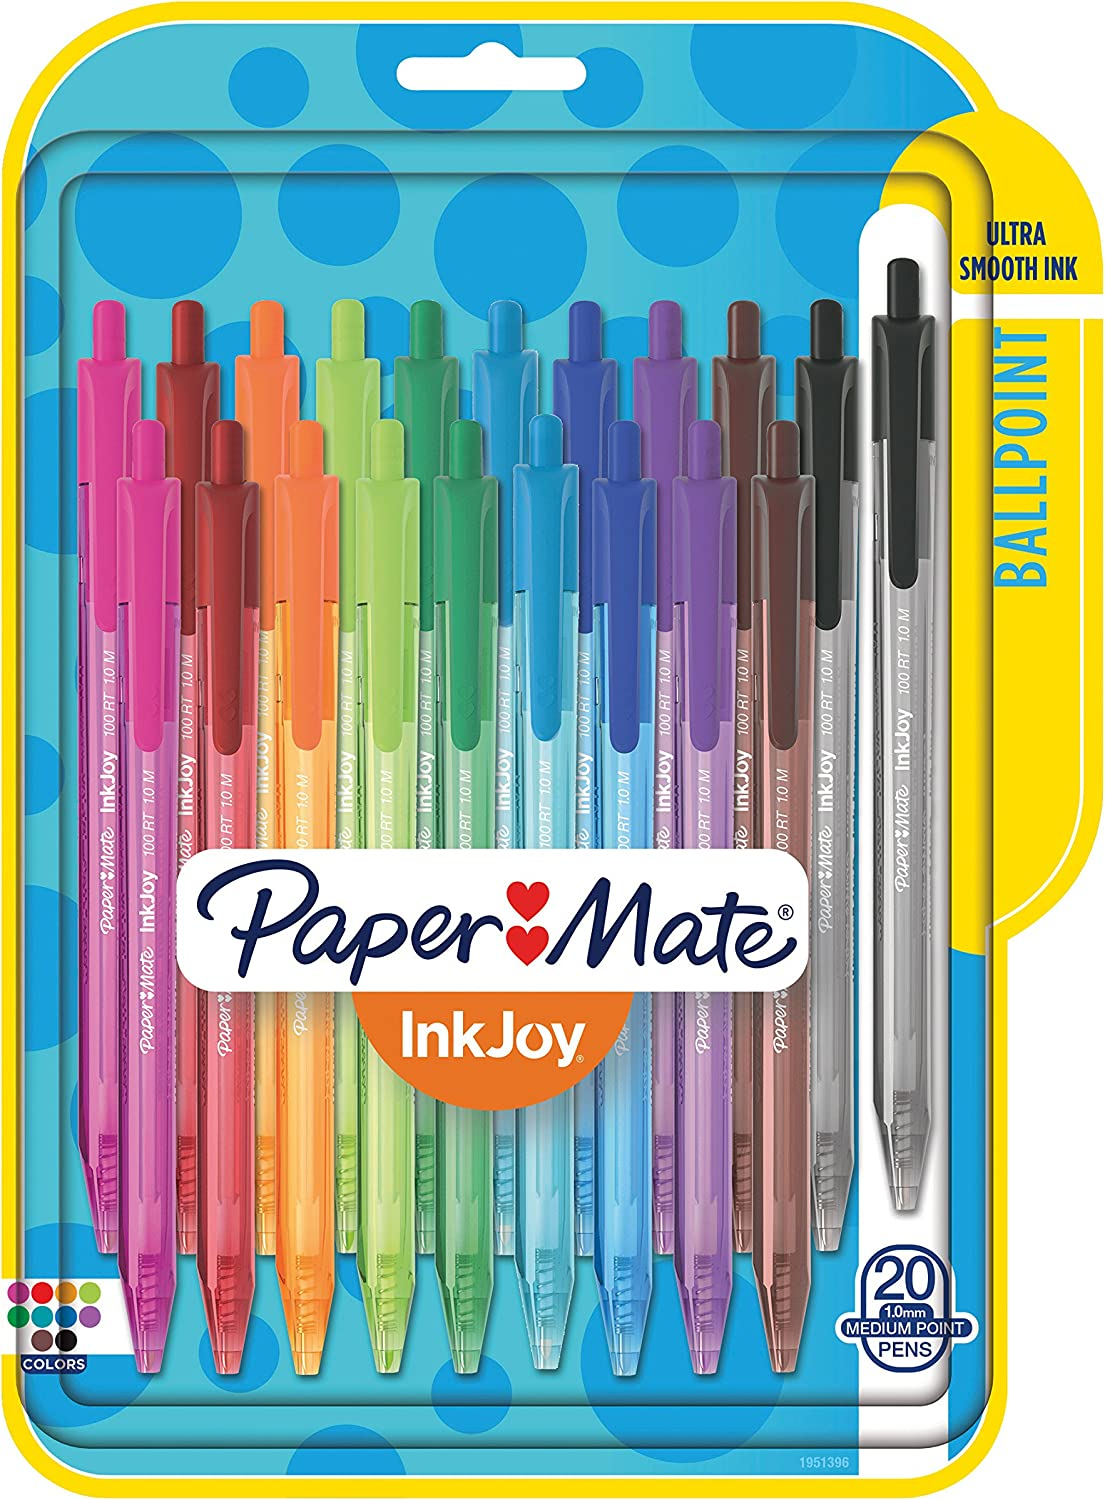 Paper Mate InkJoy 100RT Retractable Ballpoint Pens, Medium Point, Assorted, 20 Pack (1951396) : Office Products